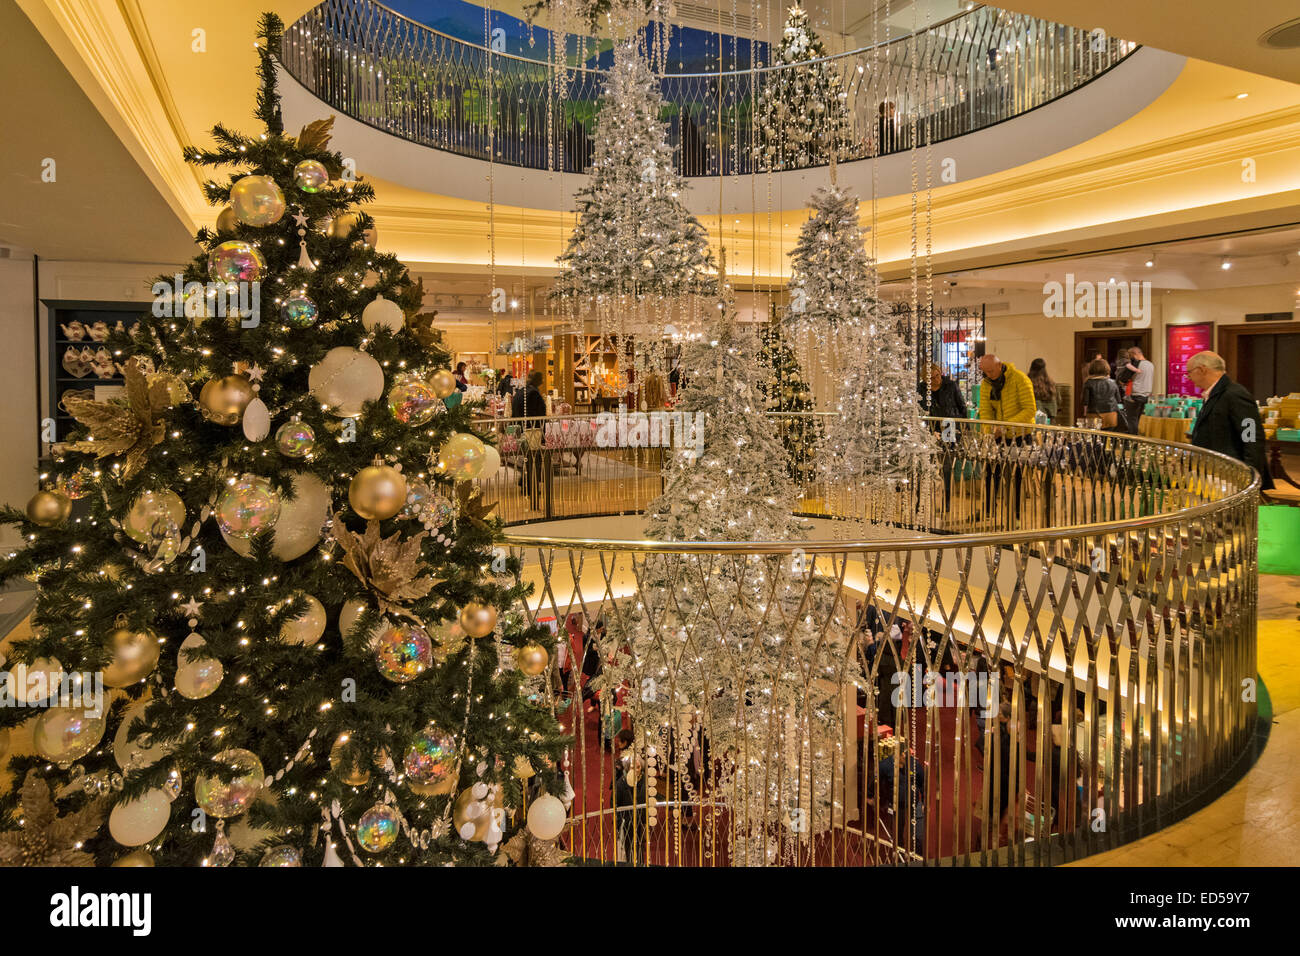 Fortnum and mason christmas decorations - Fortnum and mason christmas decorations ...